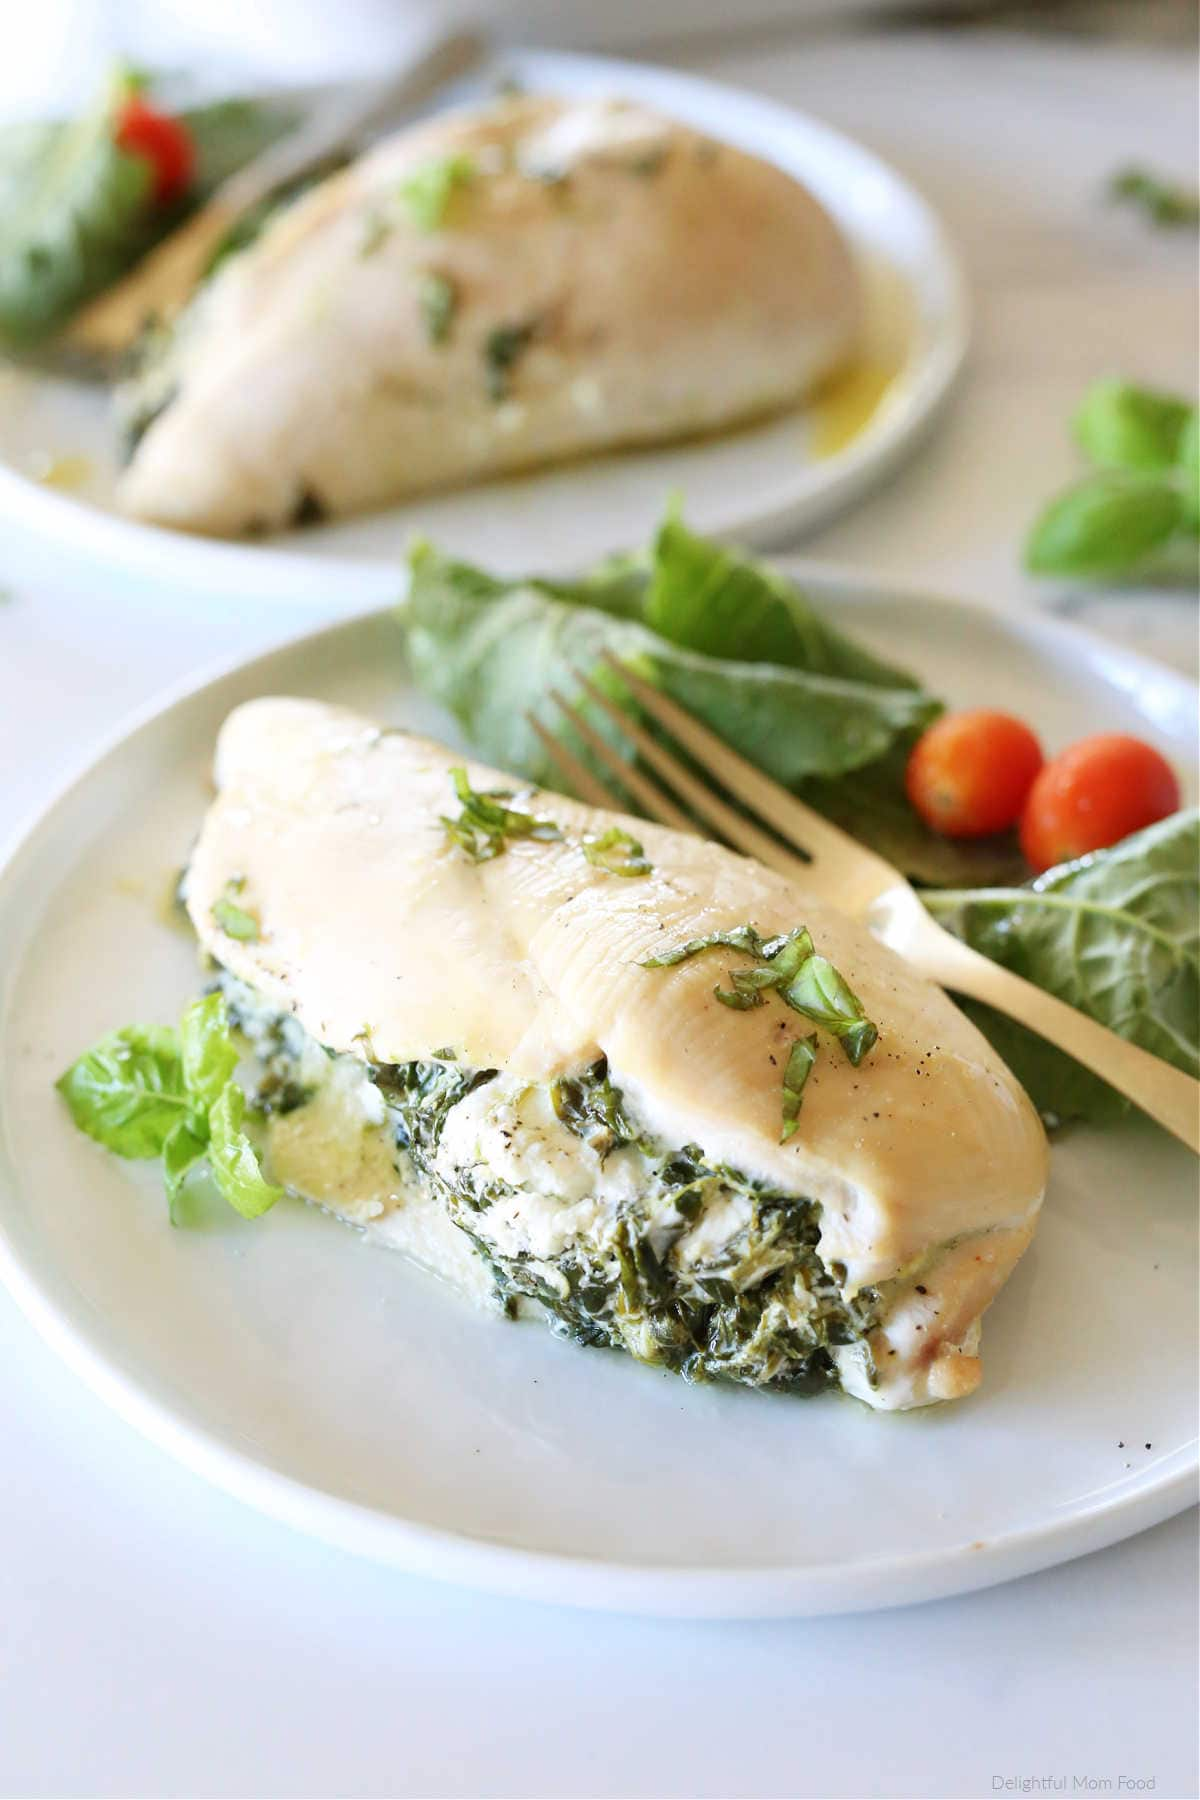 Stuffed Chicken filled with spinach and goat cheese on a white plate